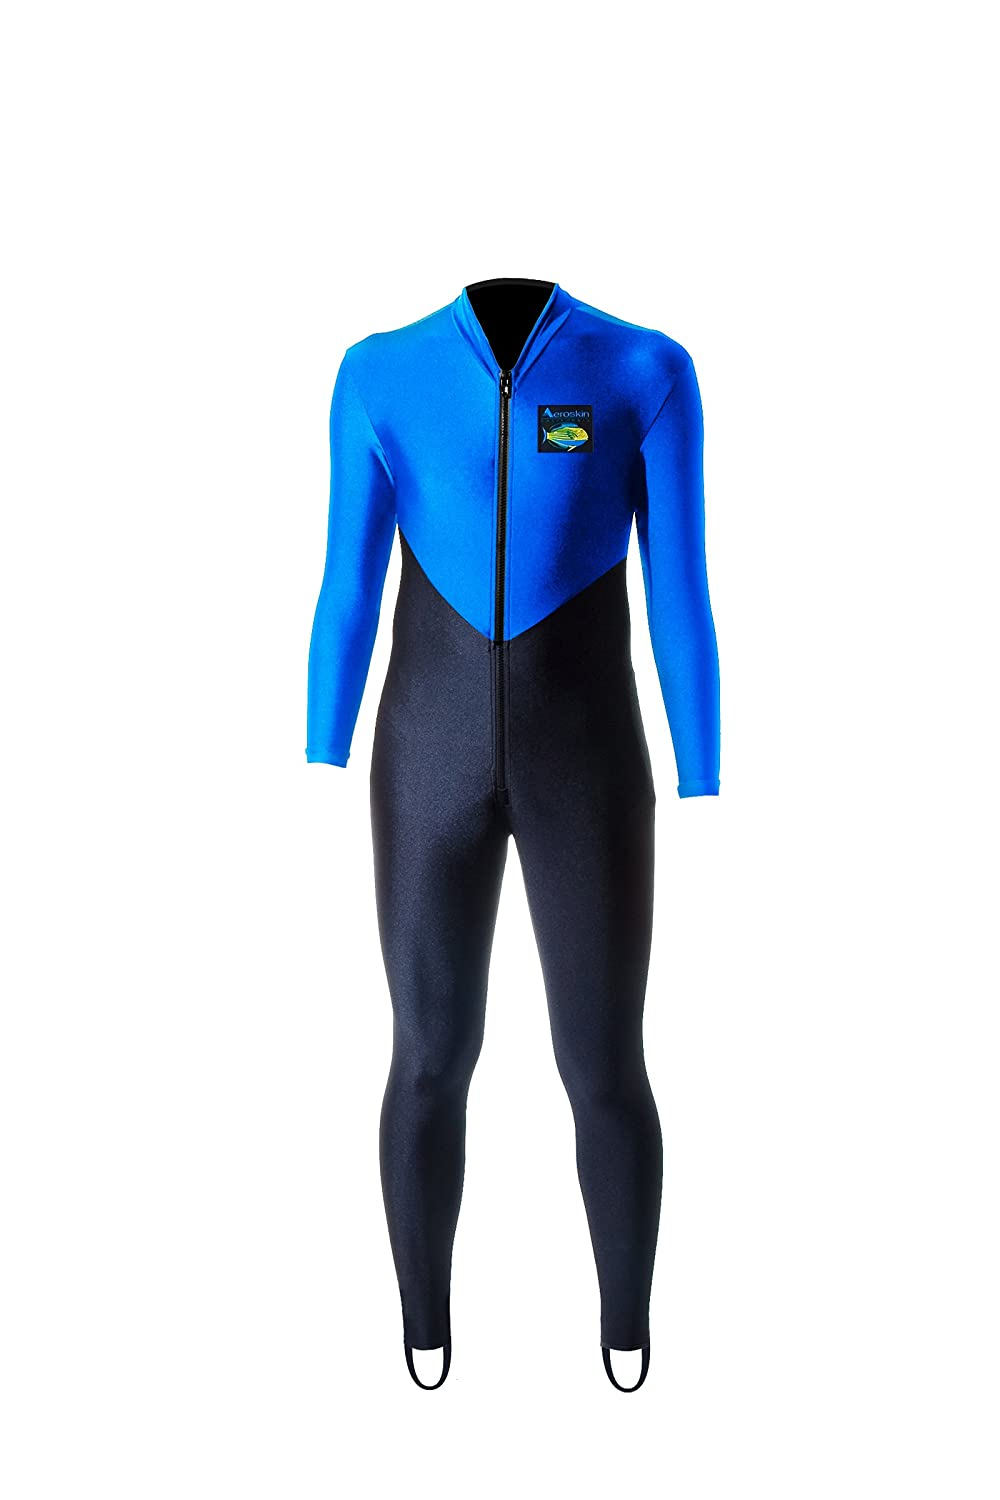 Image of Wetsuits Aeroskin Full Body (Black/Blue, Small)